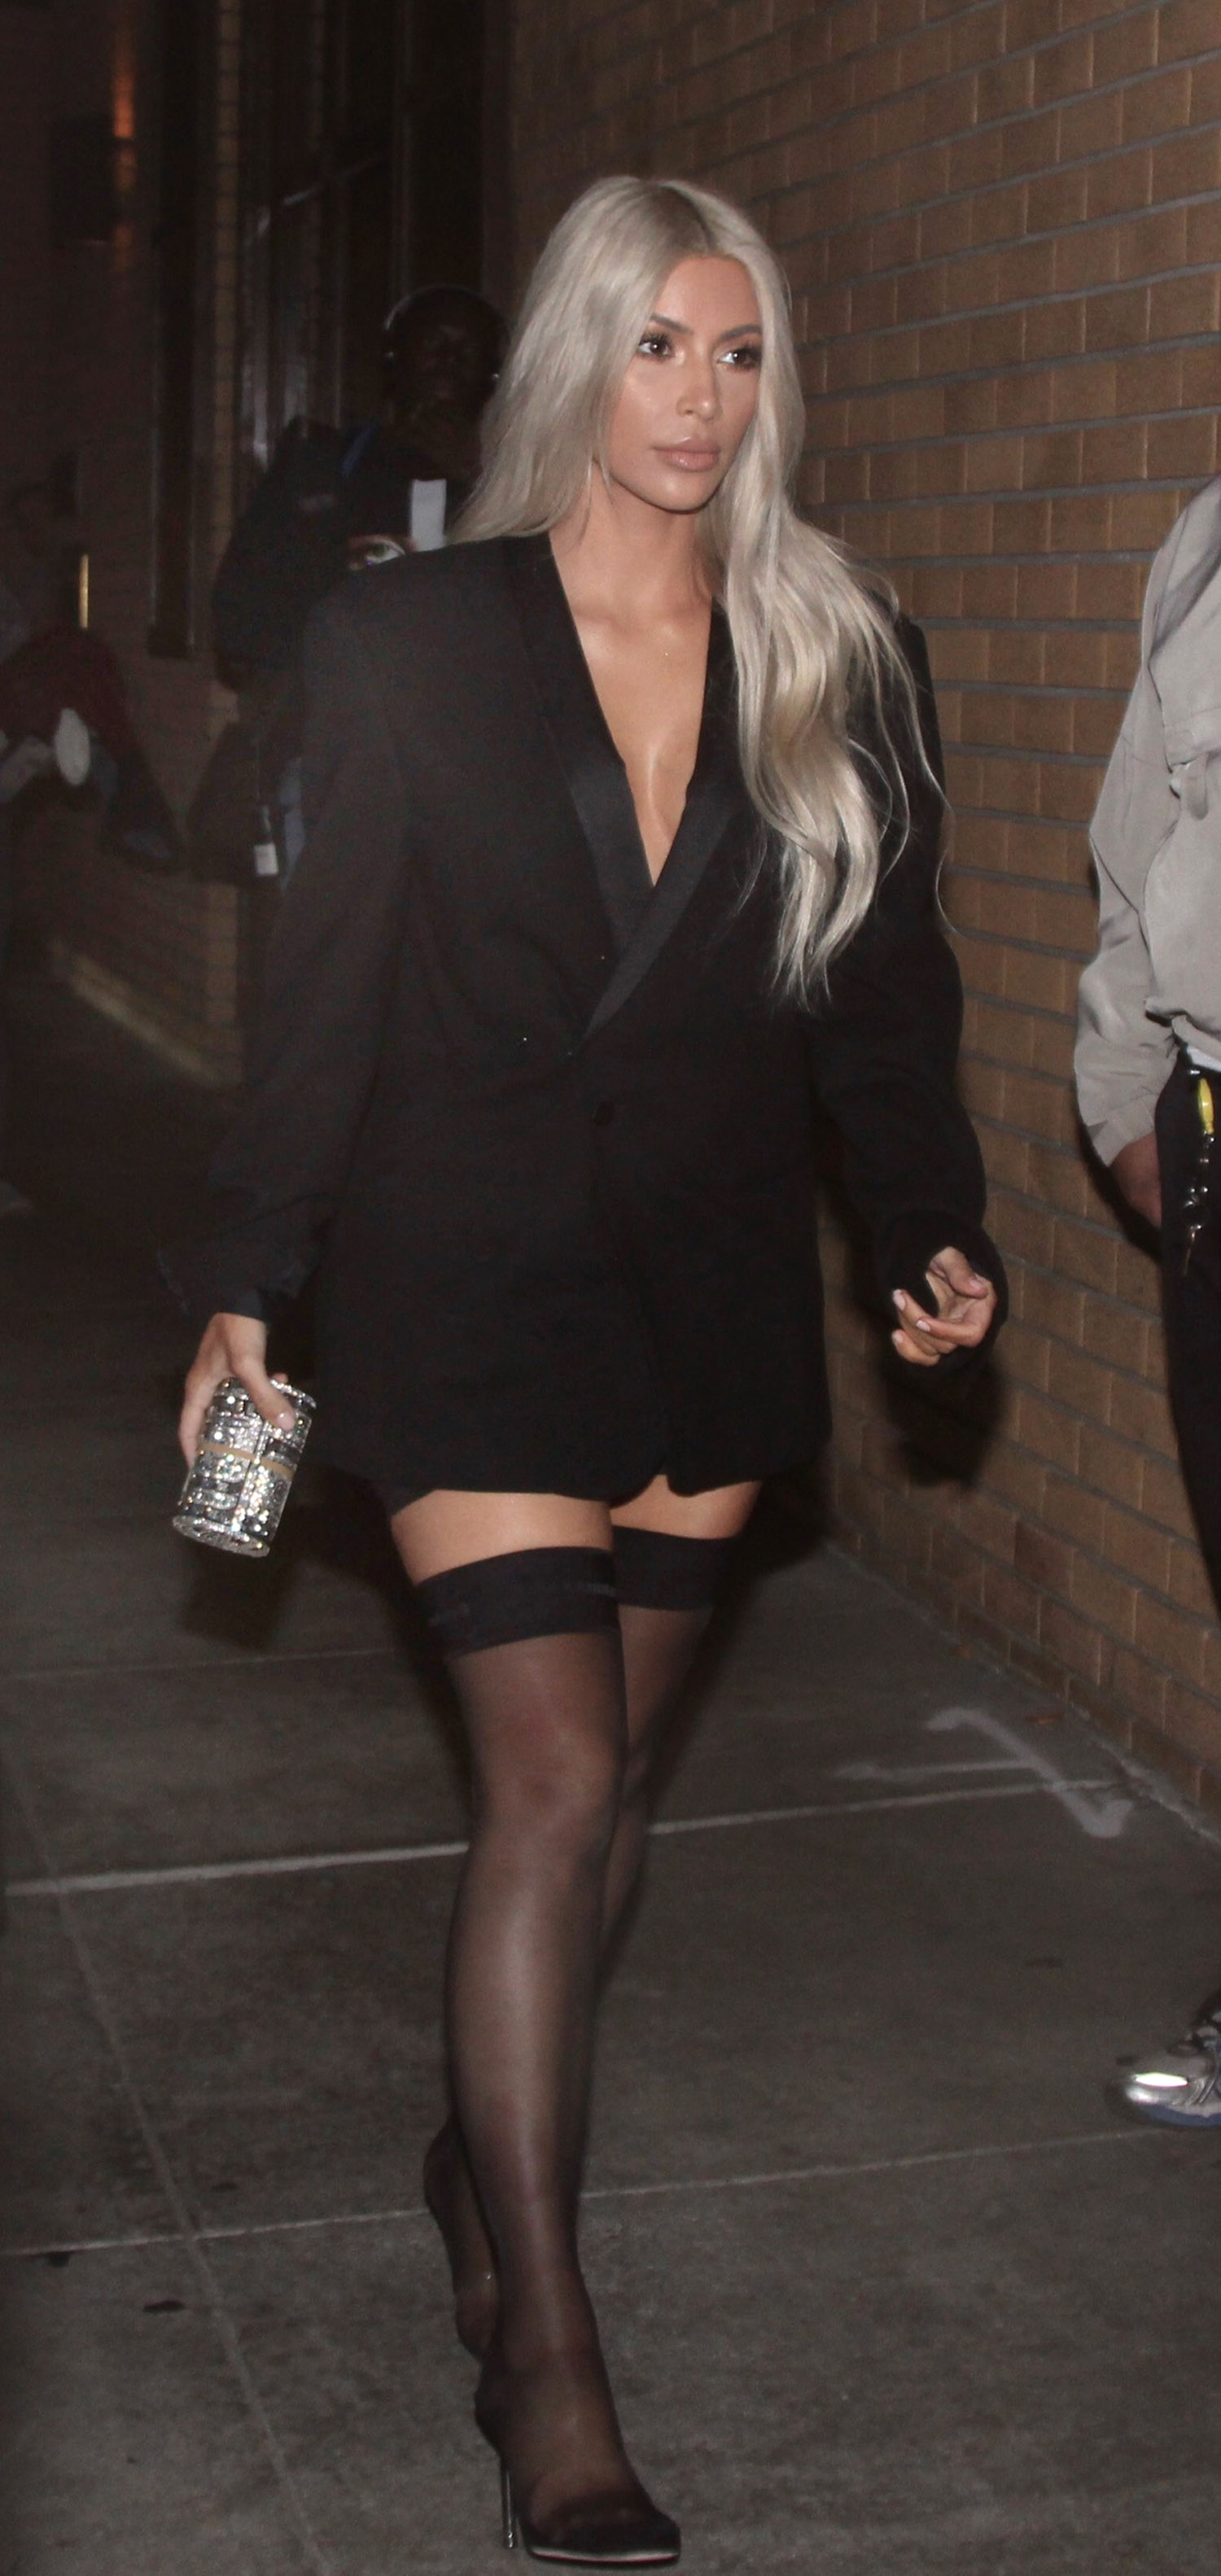 EXCLUSIVE: **PREMIUM EXCLUSIVE RATES APPLY** Kim, Kourtney and Khloe Kardashian all leave their hotel on their way to dinner in San Francisco while filming for KUWTK <P>  <B>Ref: SPL1602380  141017   EXCLUSIVE</B><BR/> Picture by: Splash News<BR/> </P><P> <B>Splash News and Pictures</B><BR/> Los Angeles:310-821-2666<BR/> New York:212-619-2666<BR/> London:870-934-2666<BR/> <span id=